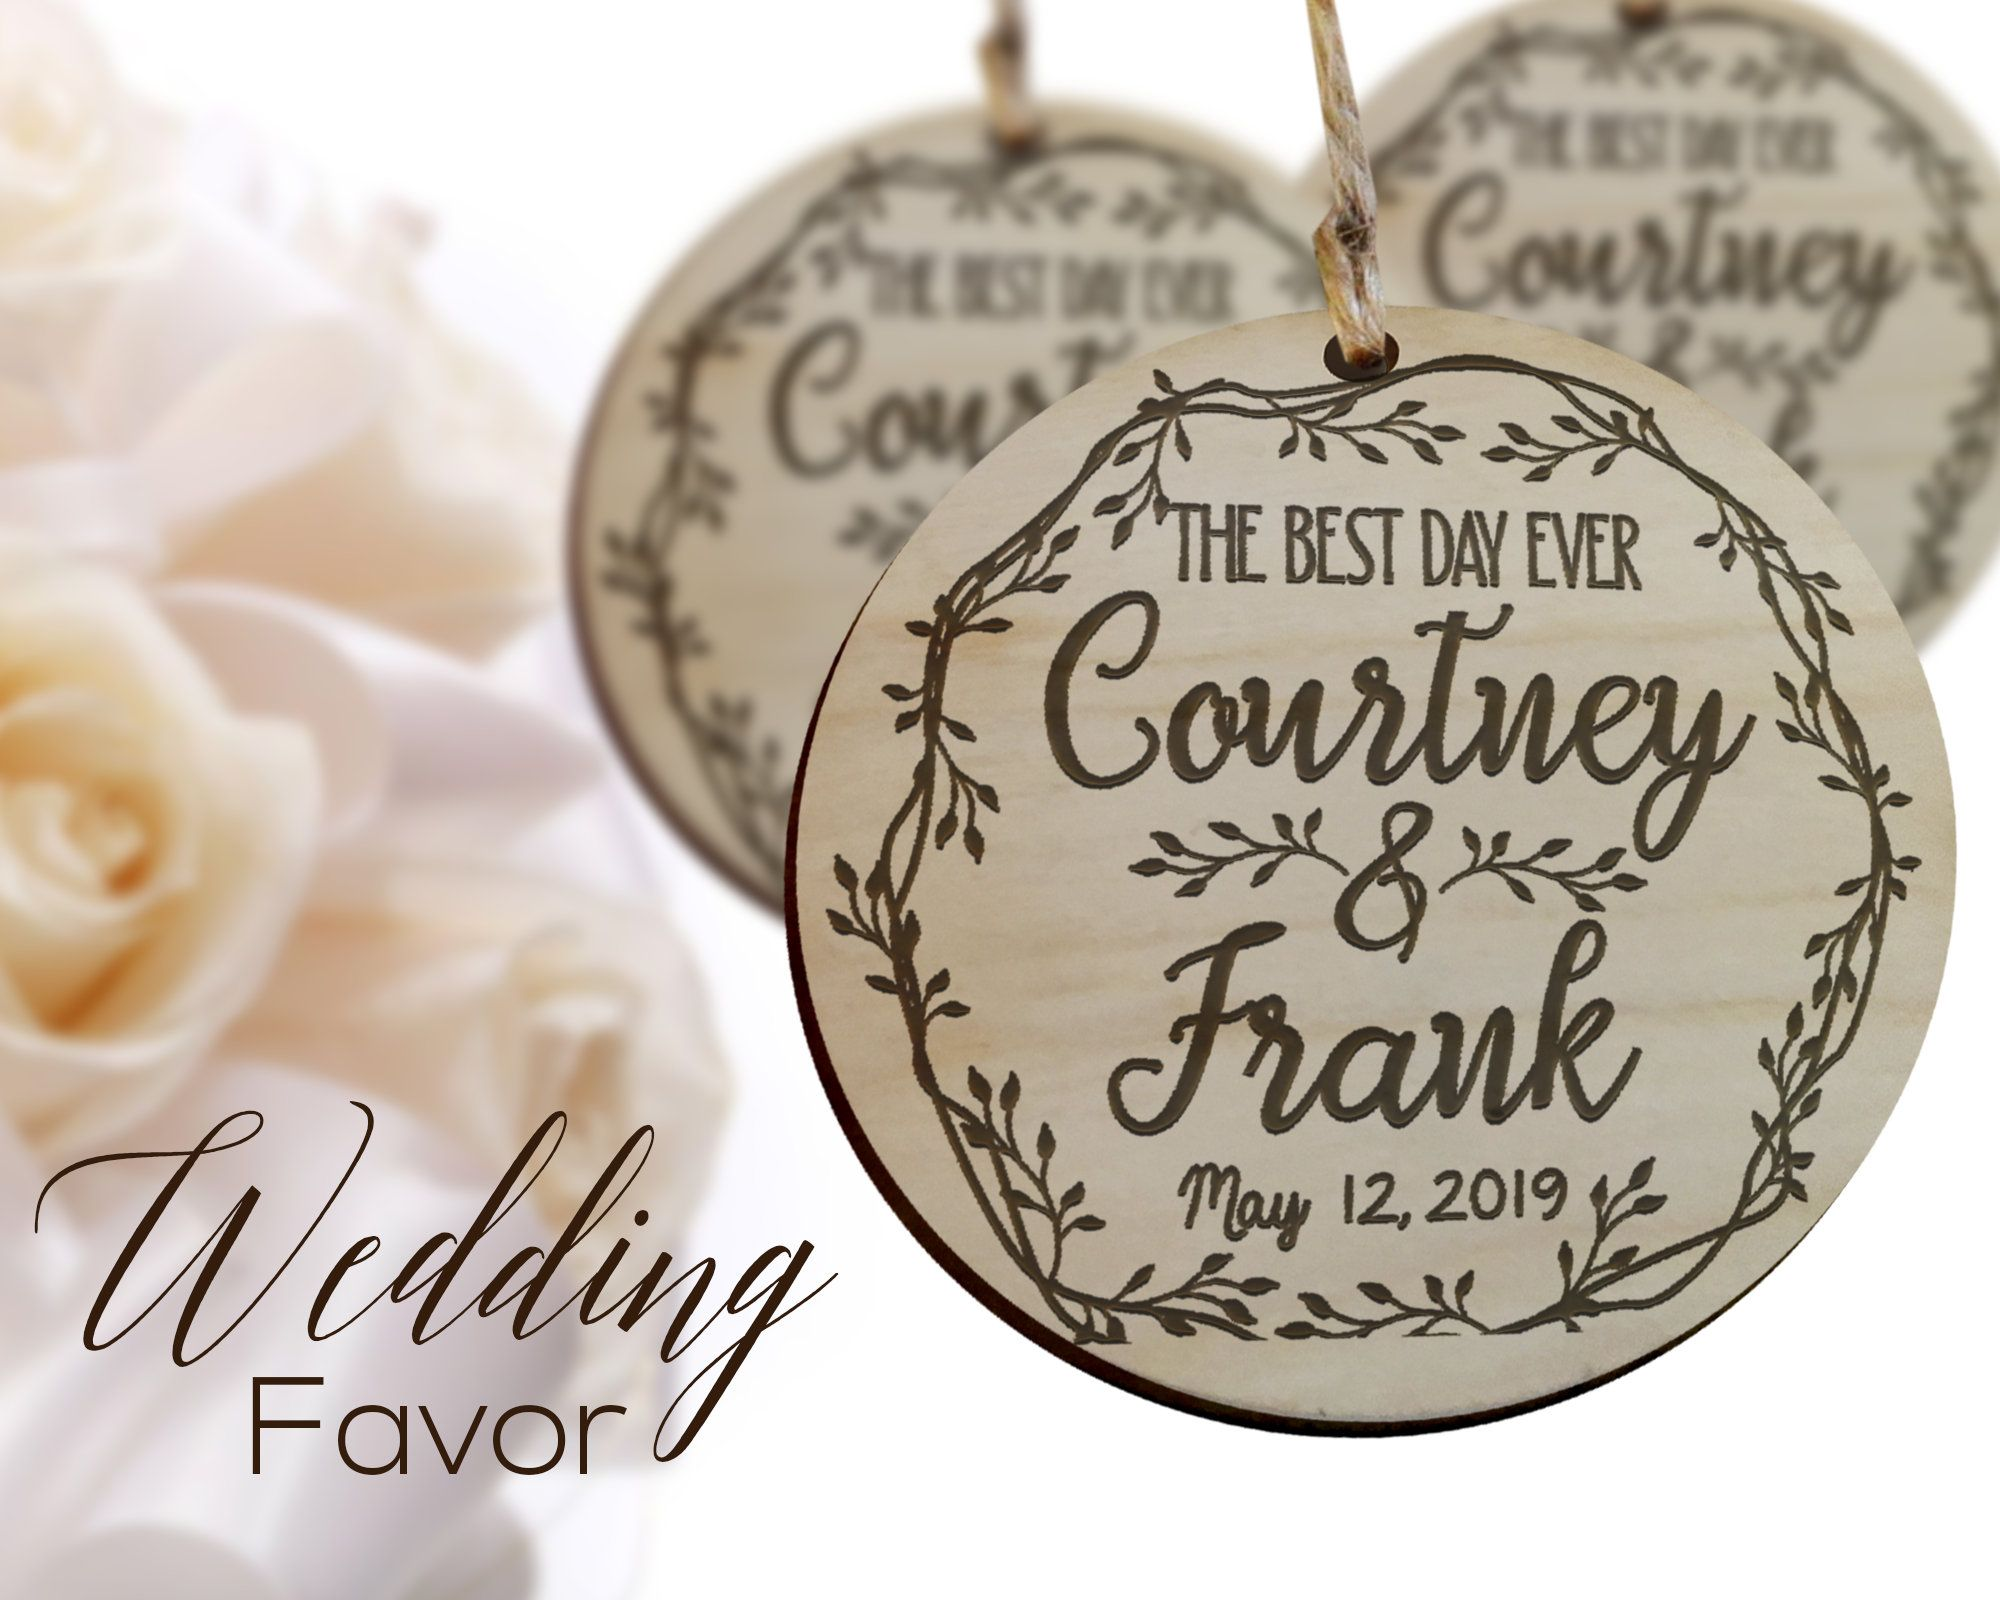 Best Day Ever Wedding Favor Wedding Favor Ornament Rustic Etsy Rustic Wedding Favors Bulk Wedding Favors Coffee Wedding Favors